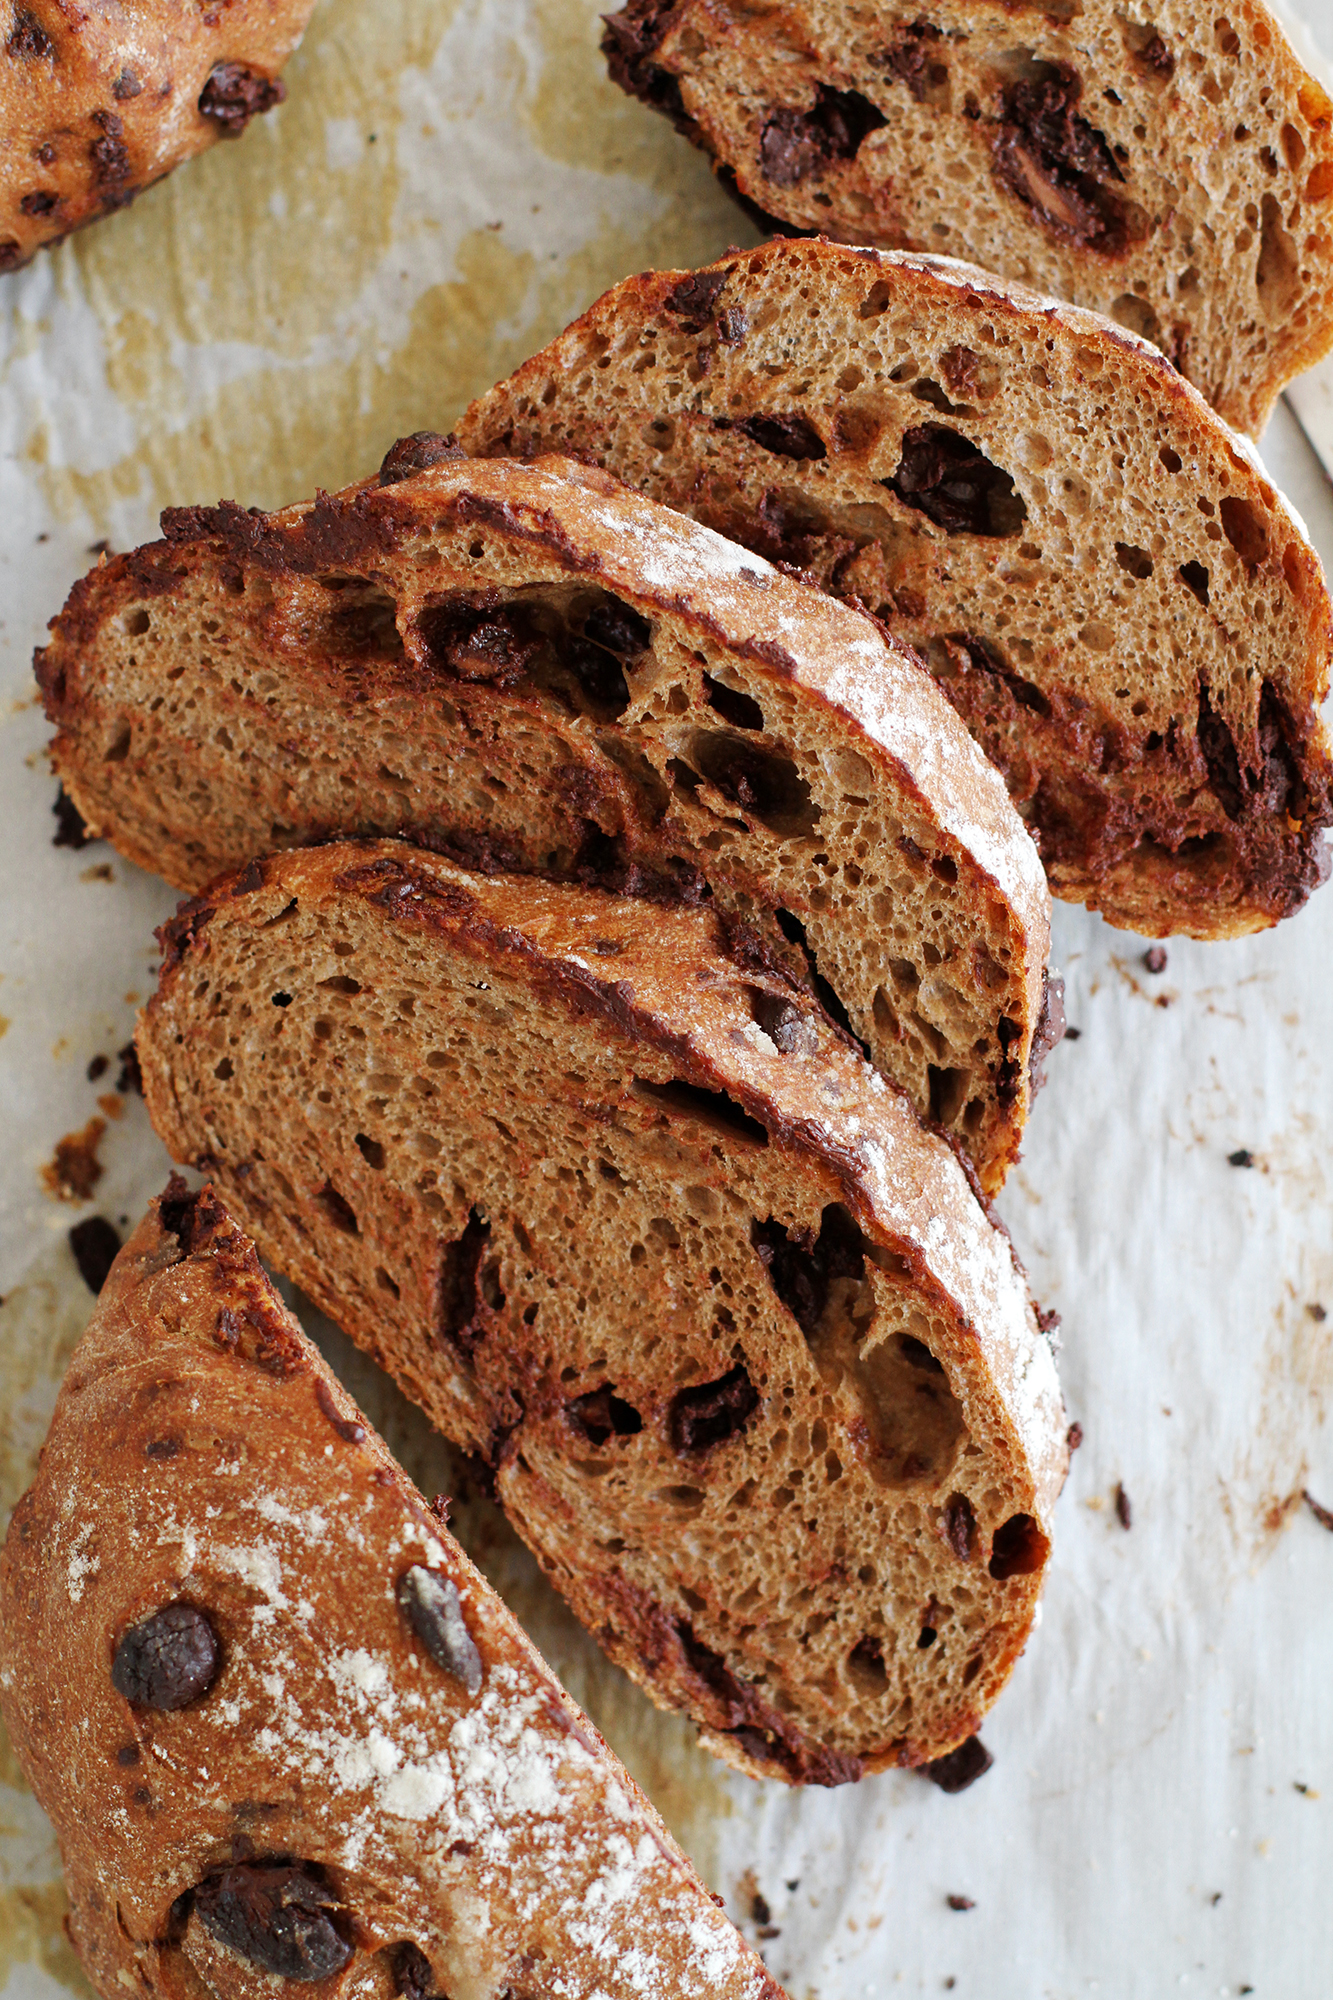 Preston Hill Bakery Chocolate Bread | girlversusdough.com @girlversusdough